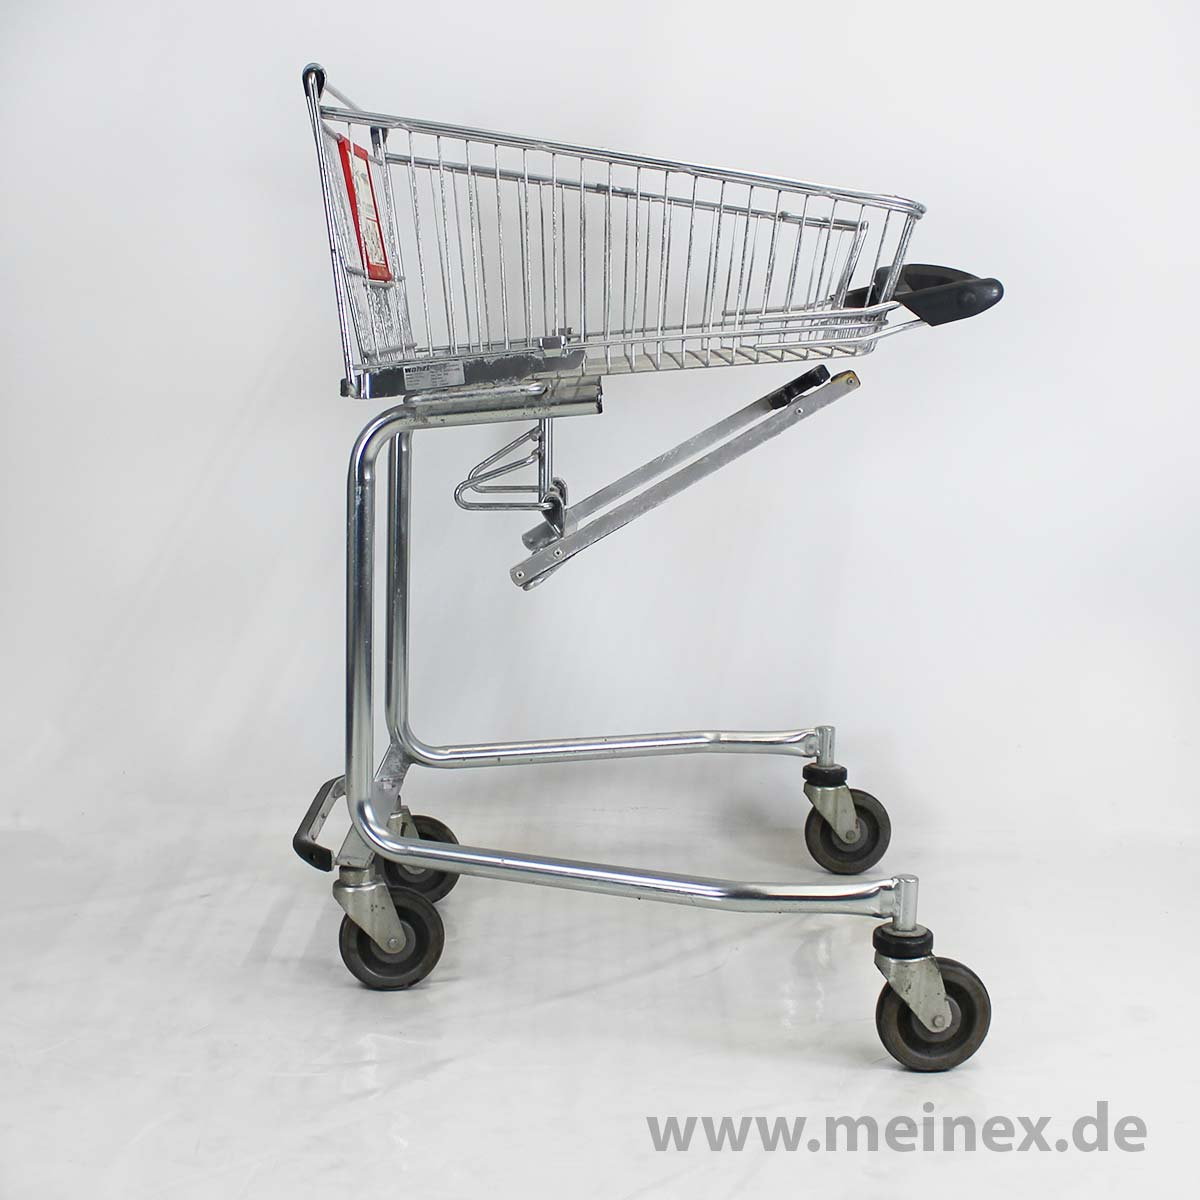 Shopping Trolley For Wheelchair Users 90 Used